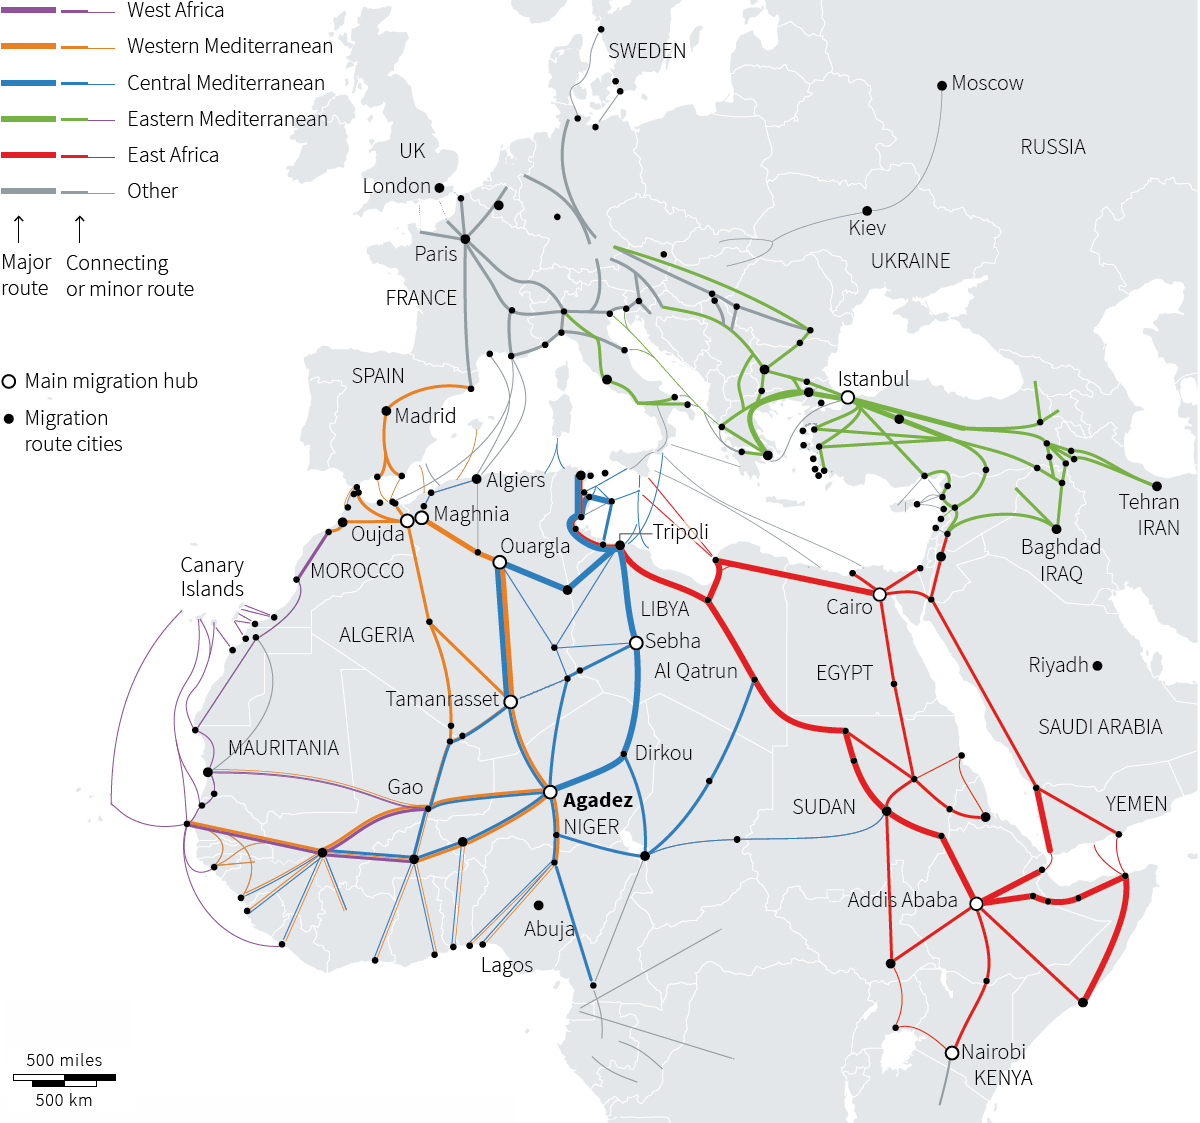 Love this visualization of migration paths to Europe. 800,000 to Germany this year alone. http://t.co/X5rido72uK http://t.co/DLOGsXZlNE